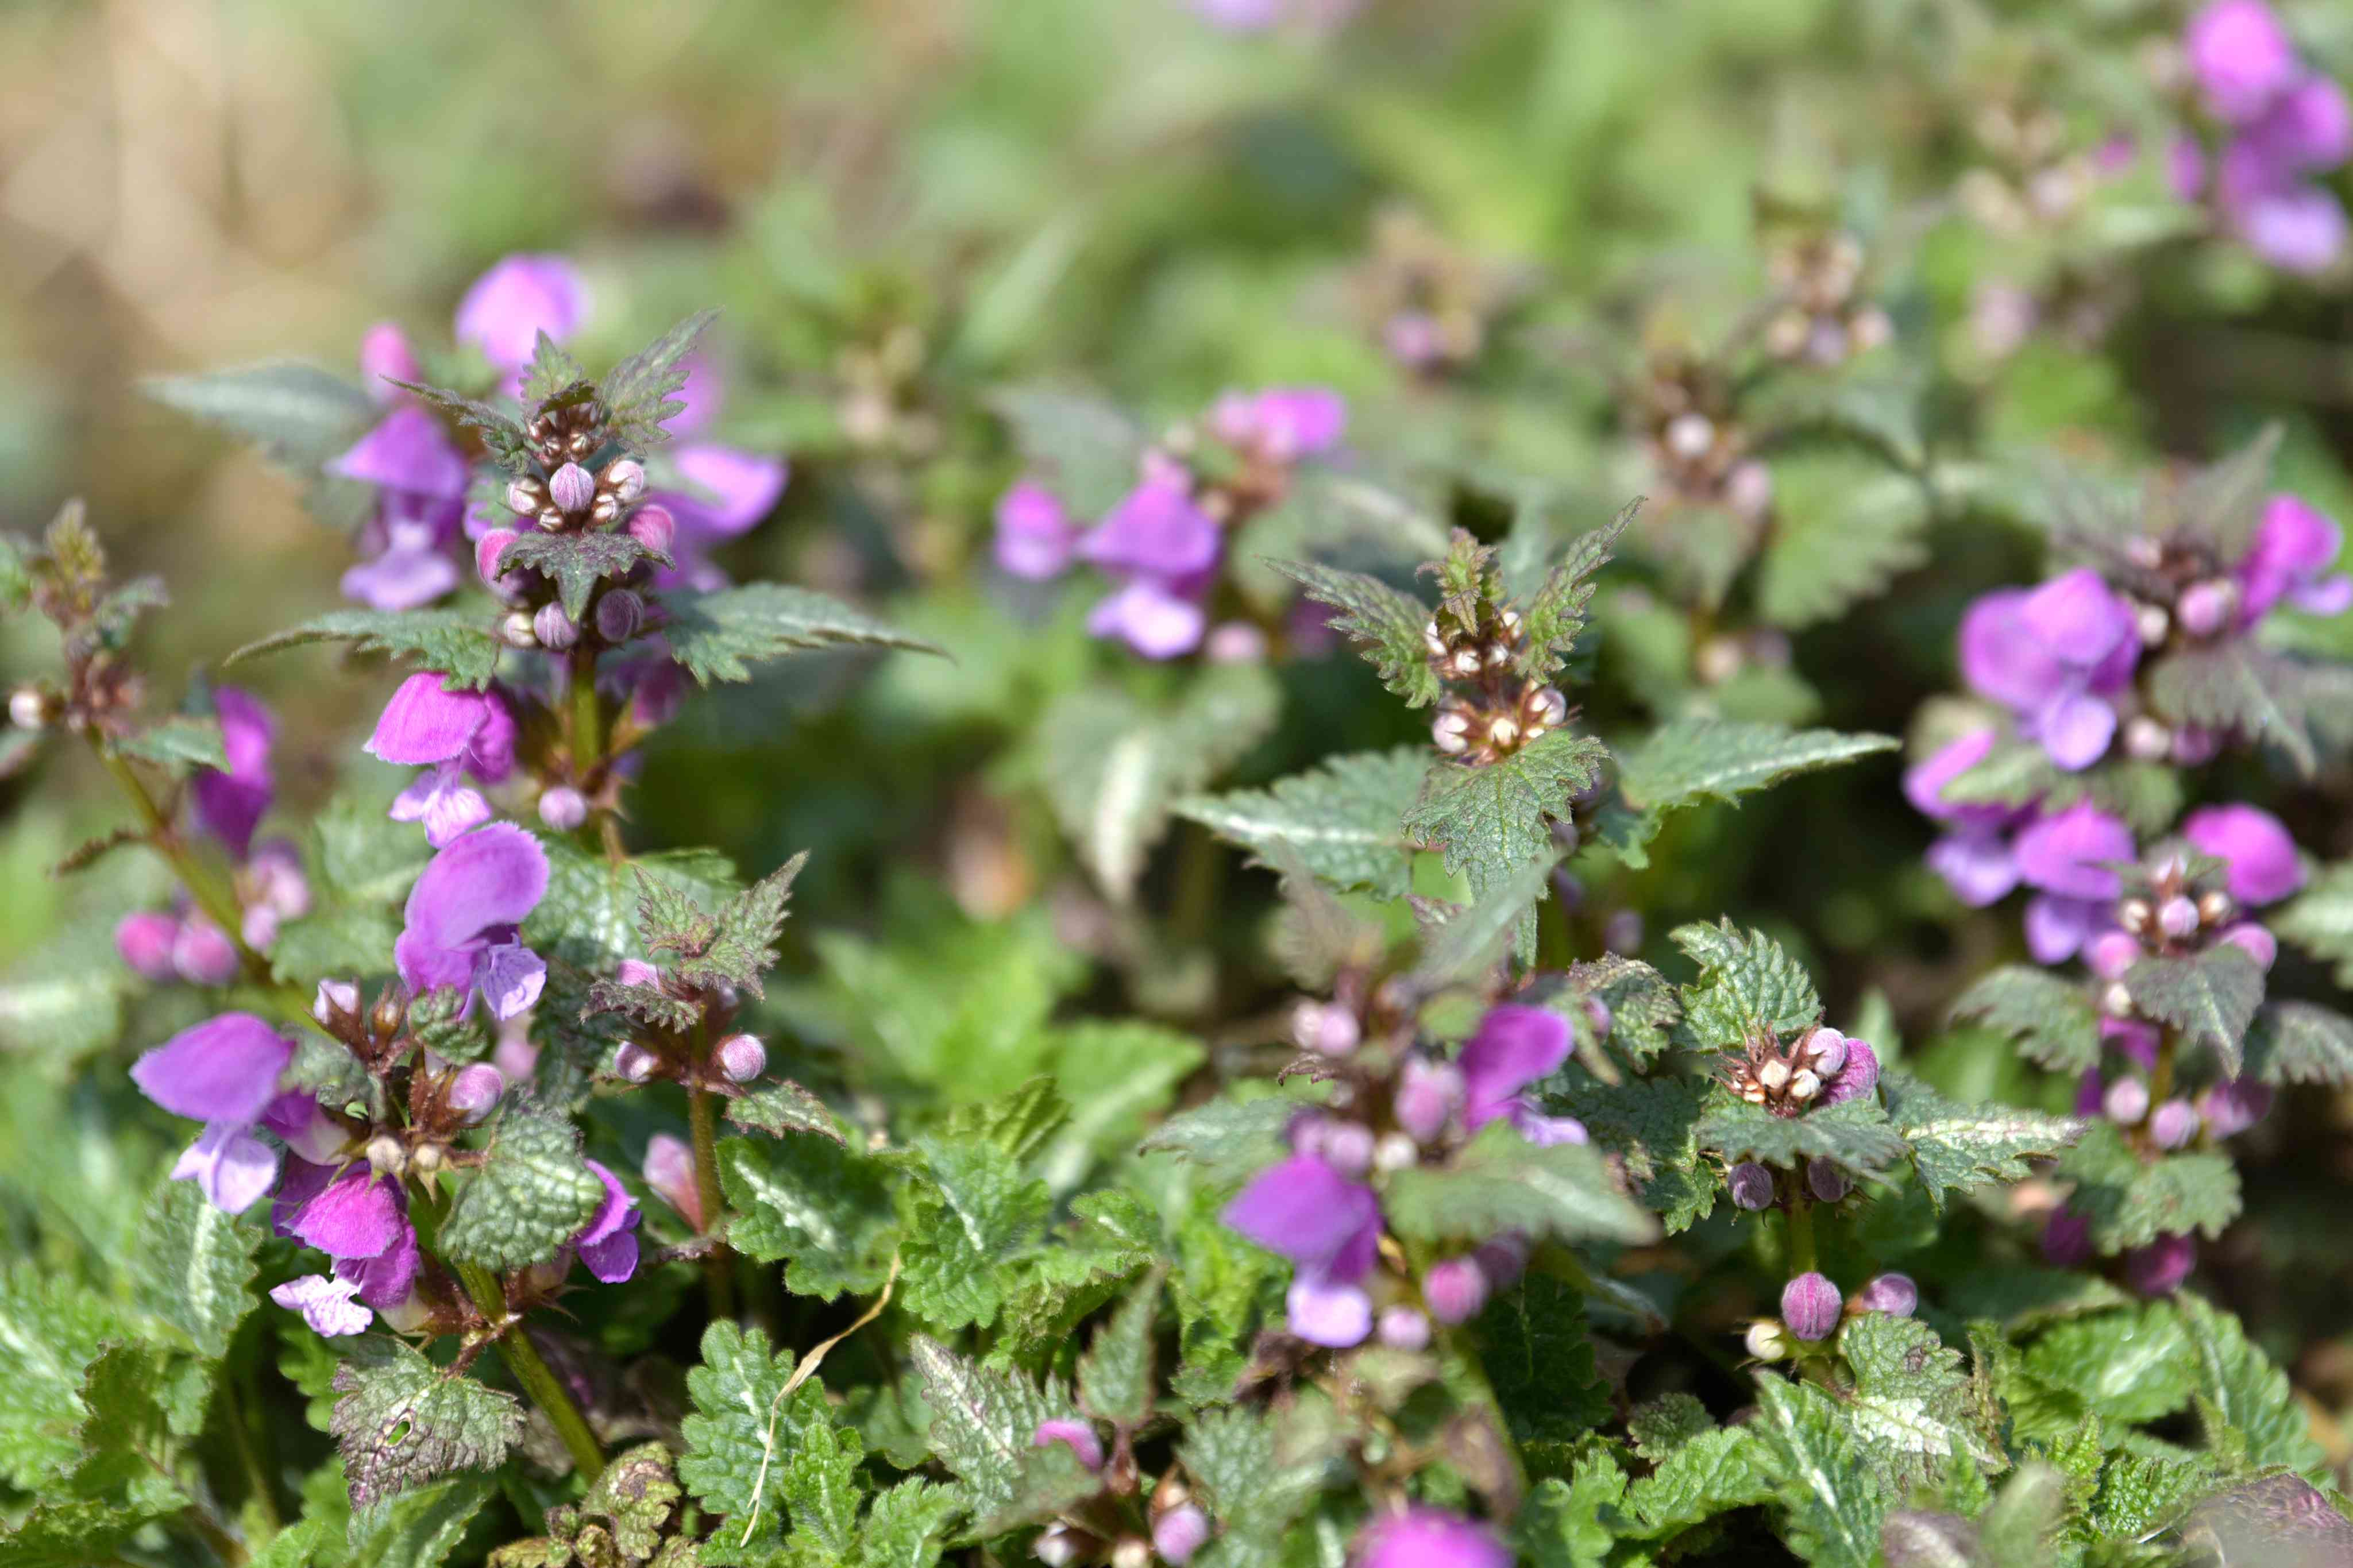 Spotted dead nettle plants with small pink flowers and buds on top of stems in sunlight